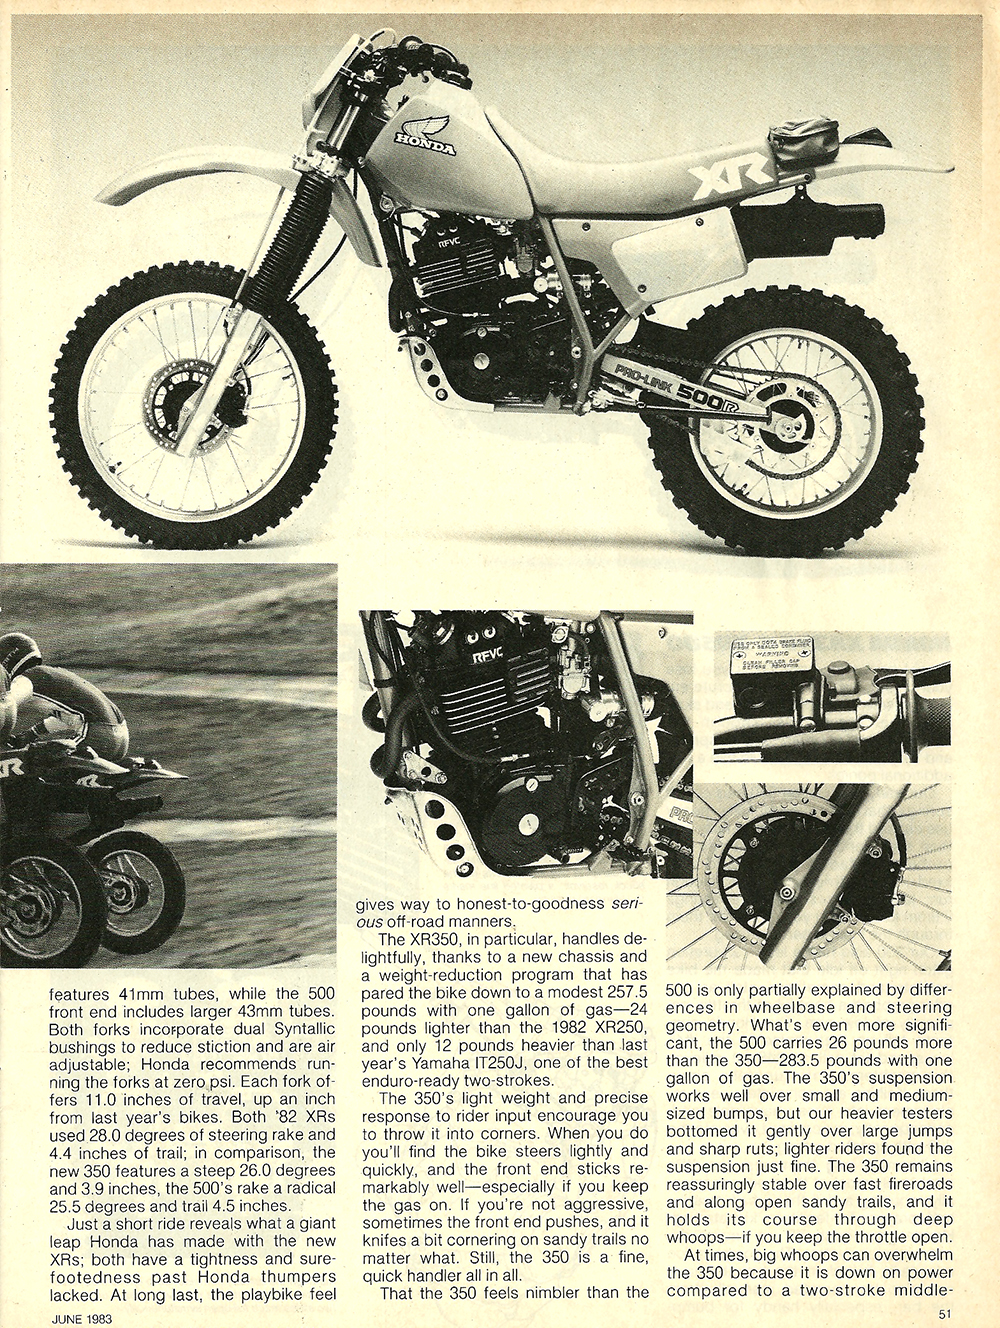 1983 Honda XR350R XR500R road test 4.jpg